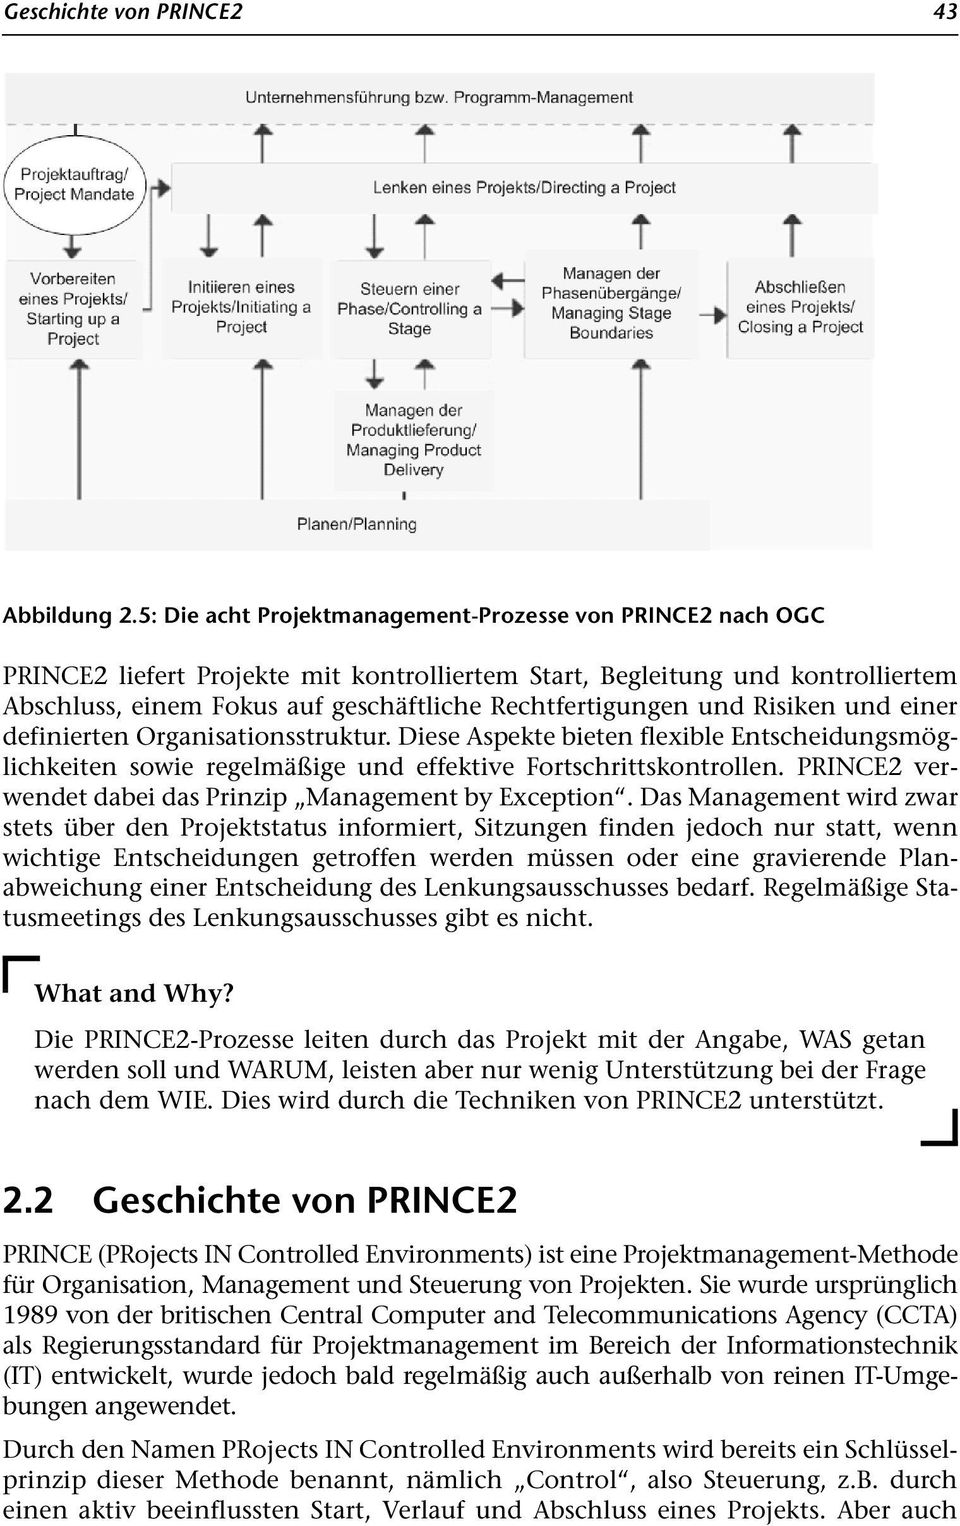 Niedlich Prince2 Projektmanagement Vorlagen Fotos - Entry Level ...